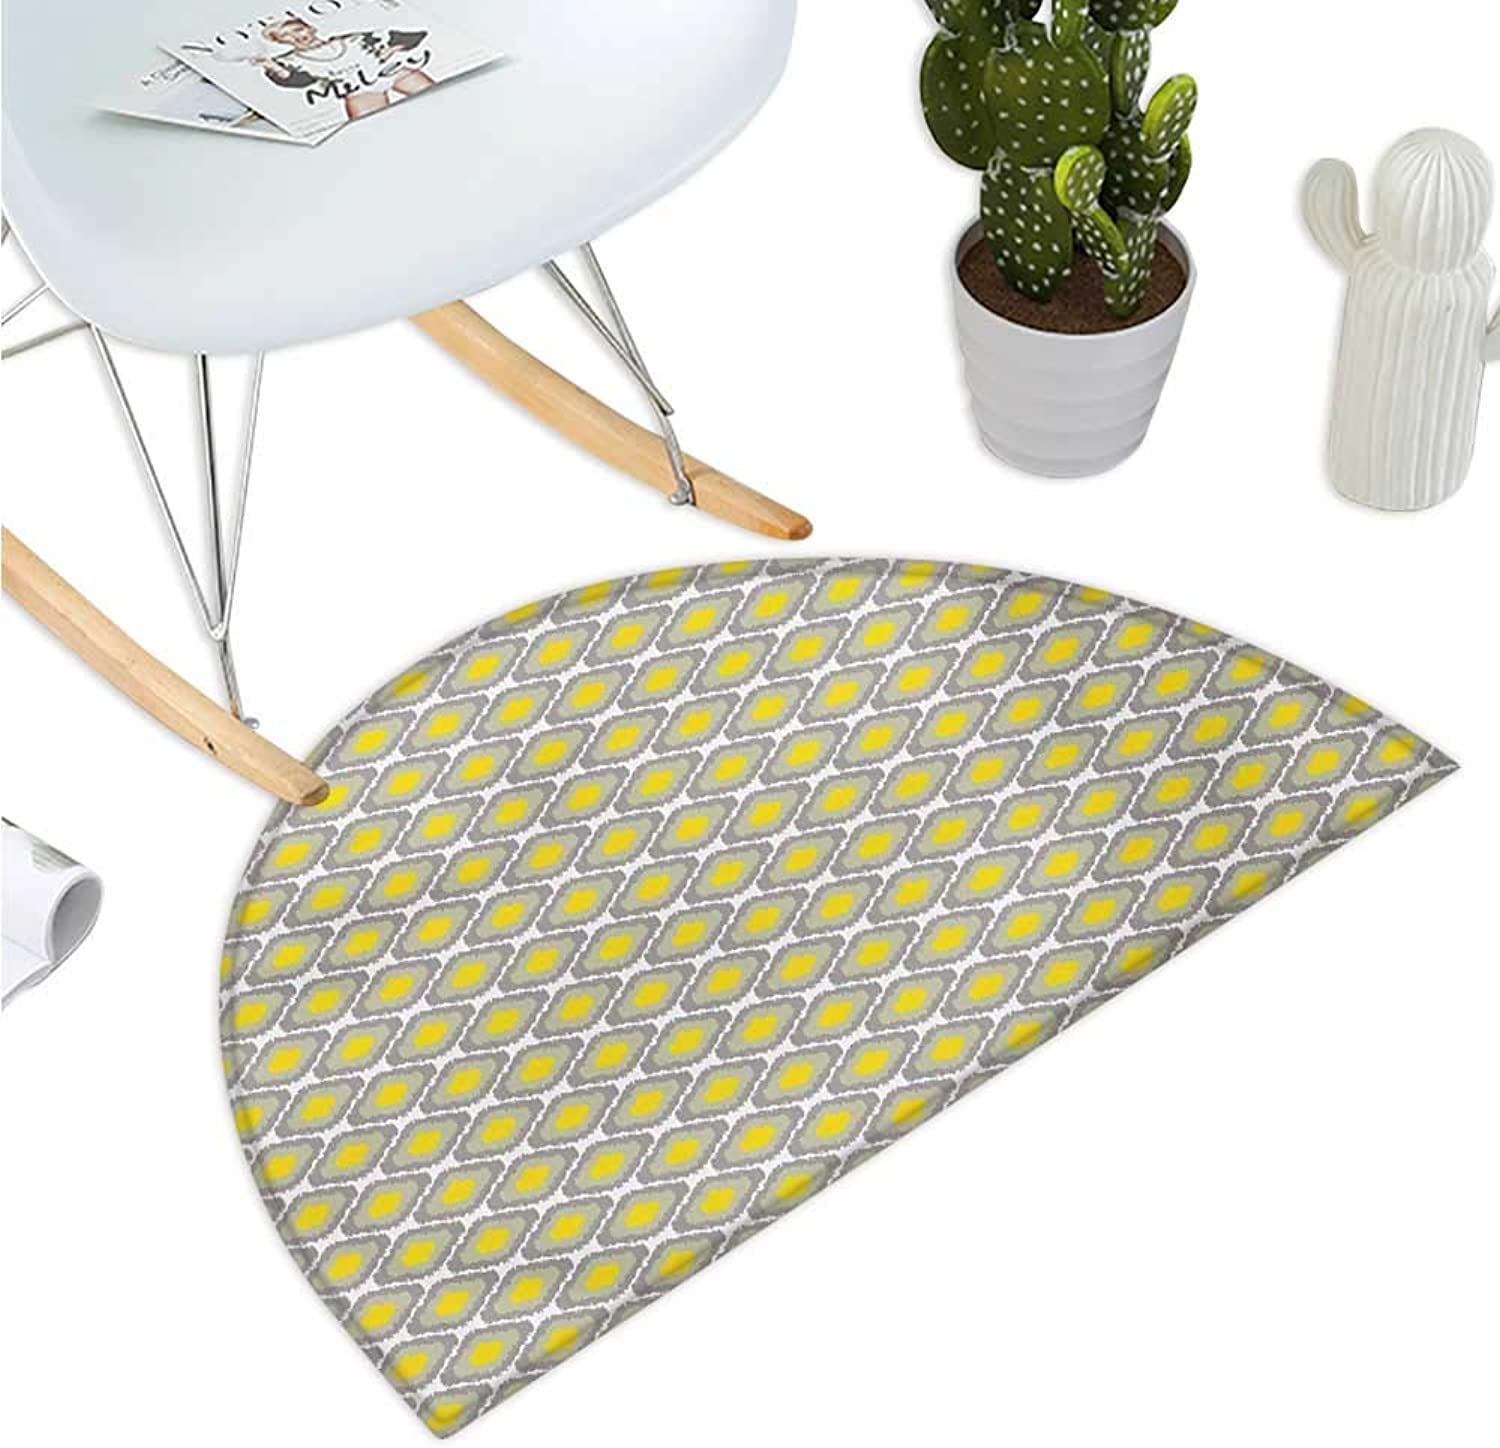 Ikat Semicircular Cushion Surreal Geometric Pattern with Squares with Vintage color Palette Illustration Bathroom Mat H 51.1  xD 76.7  Grey Yellow White